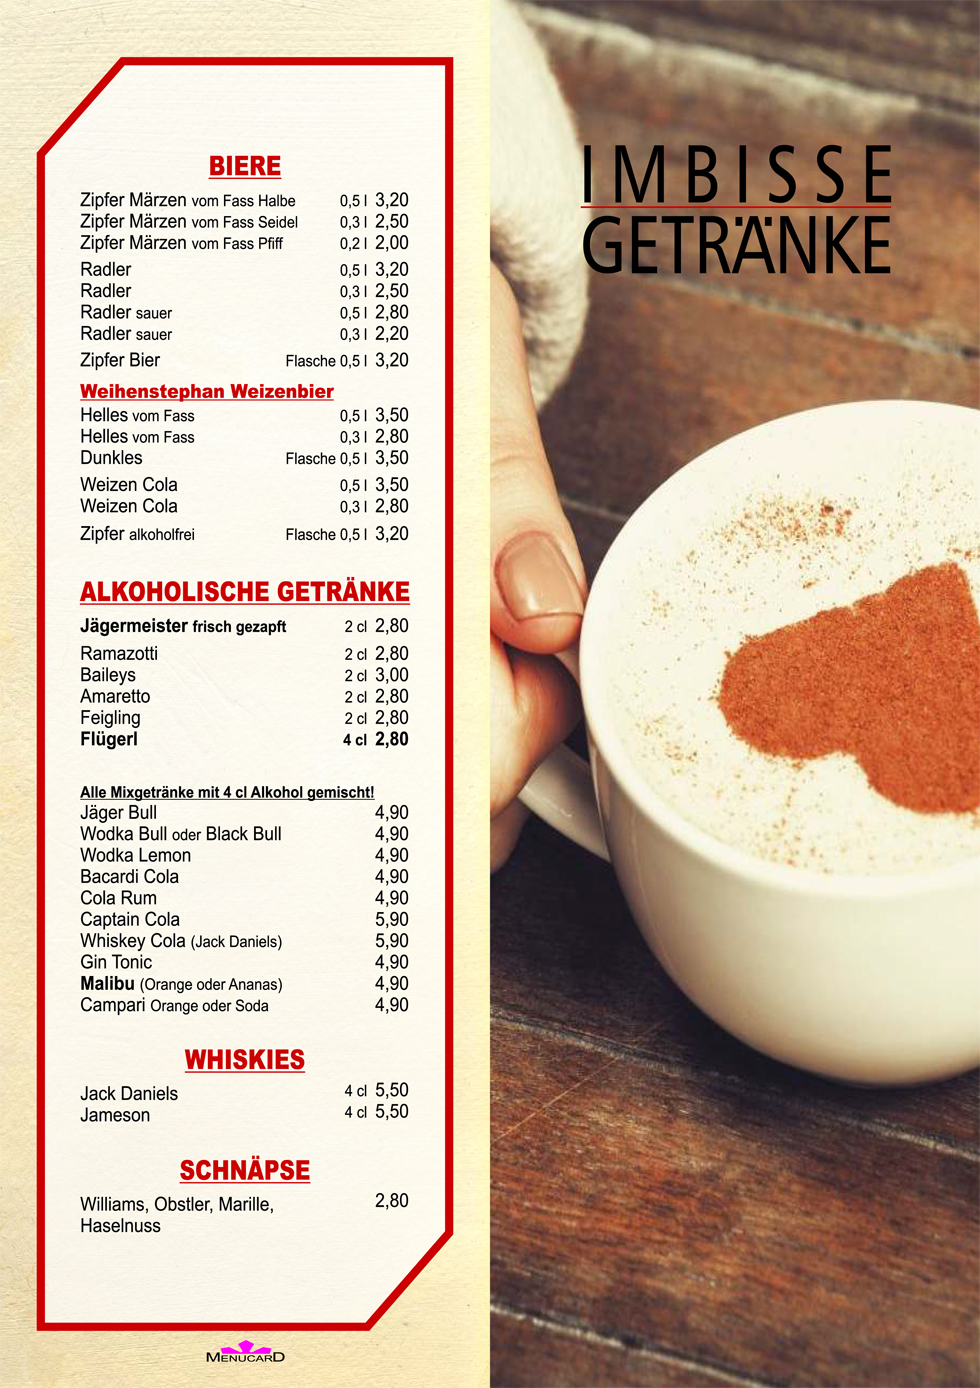 Imbisse & Getränke | Cafe Cup&Cino - Cafe Radfeld - Das Cafe in ...